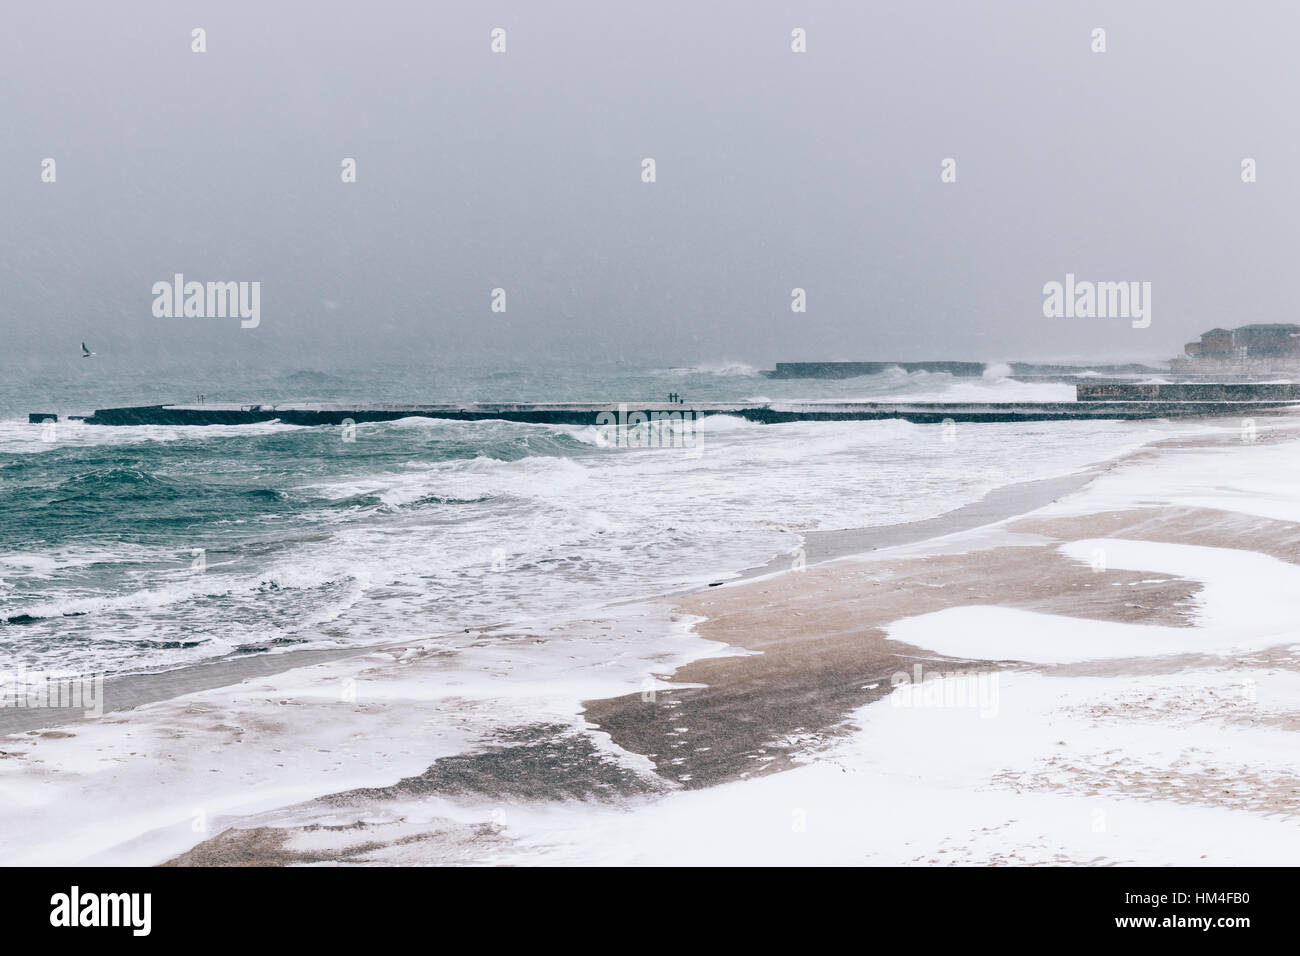 View of snow-covered pier and the sea during a snowfall in winter, soft focus Stock Photo